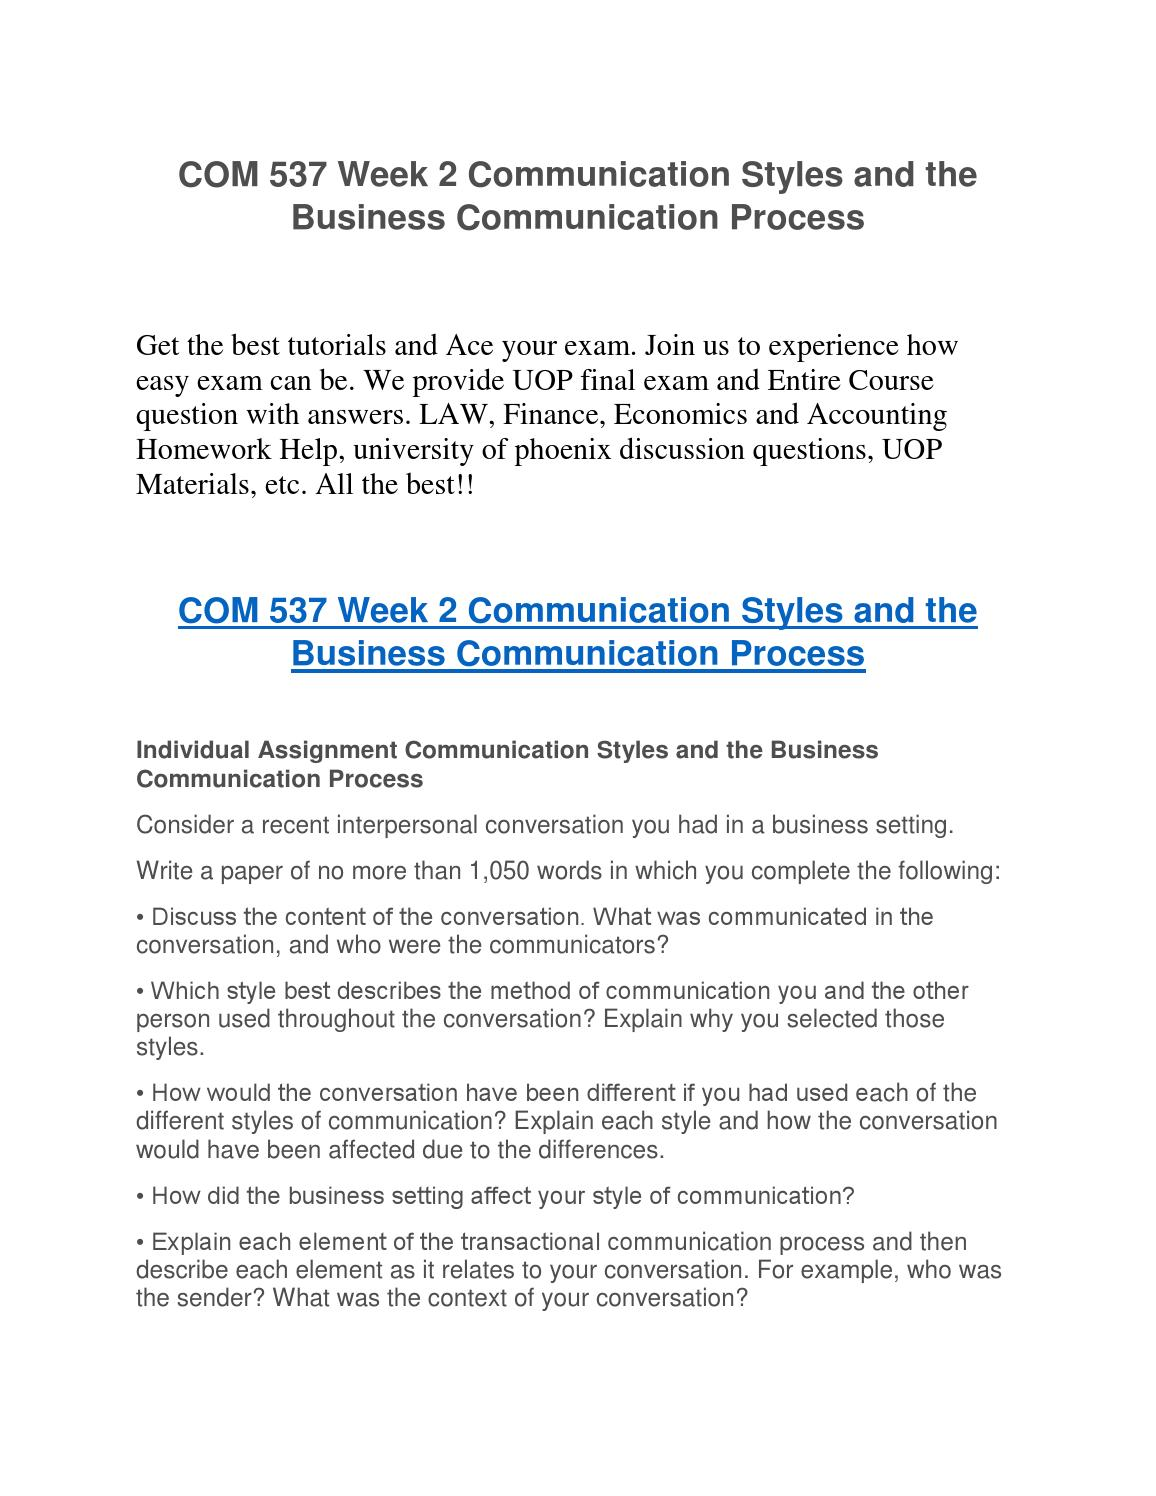 COM 537 Week 2 Communication Styles And The Business Communication